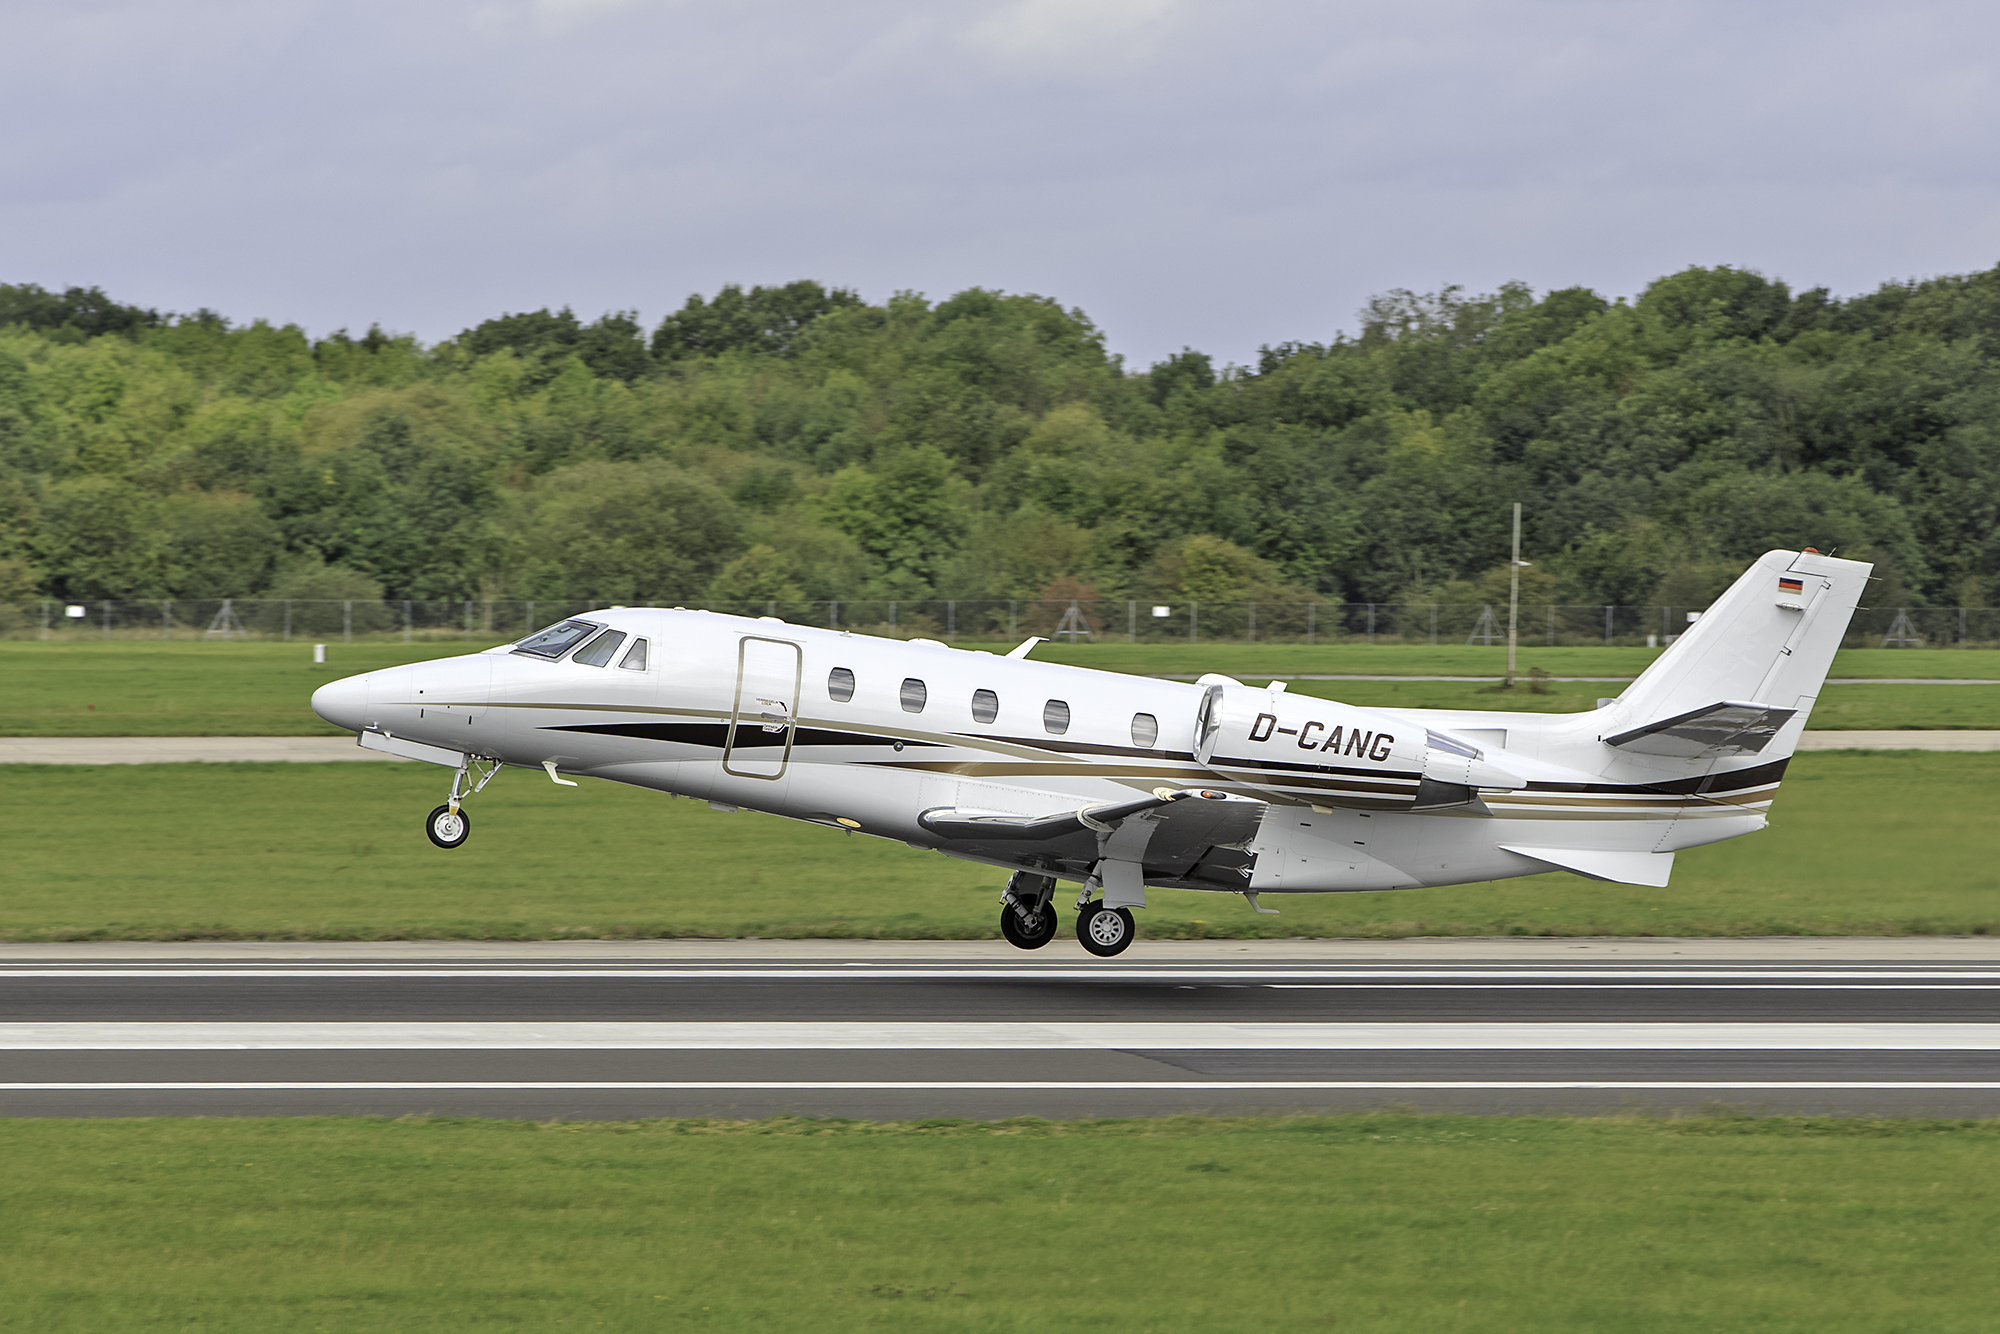 Citation 560 XLS D-CANG was photographed rotating from Runway 23 Left on 2nd September by Paul Bailey.